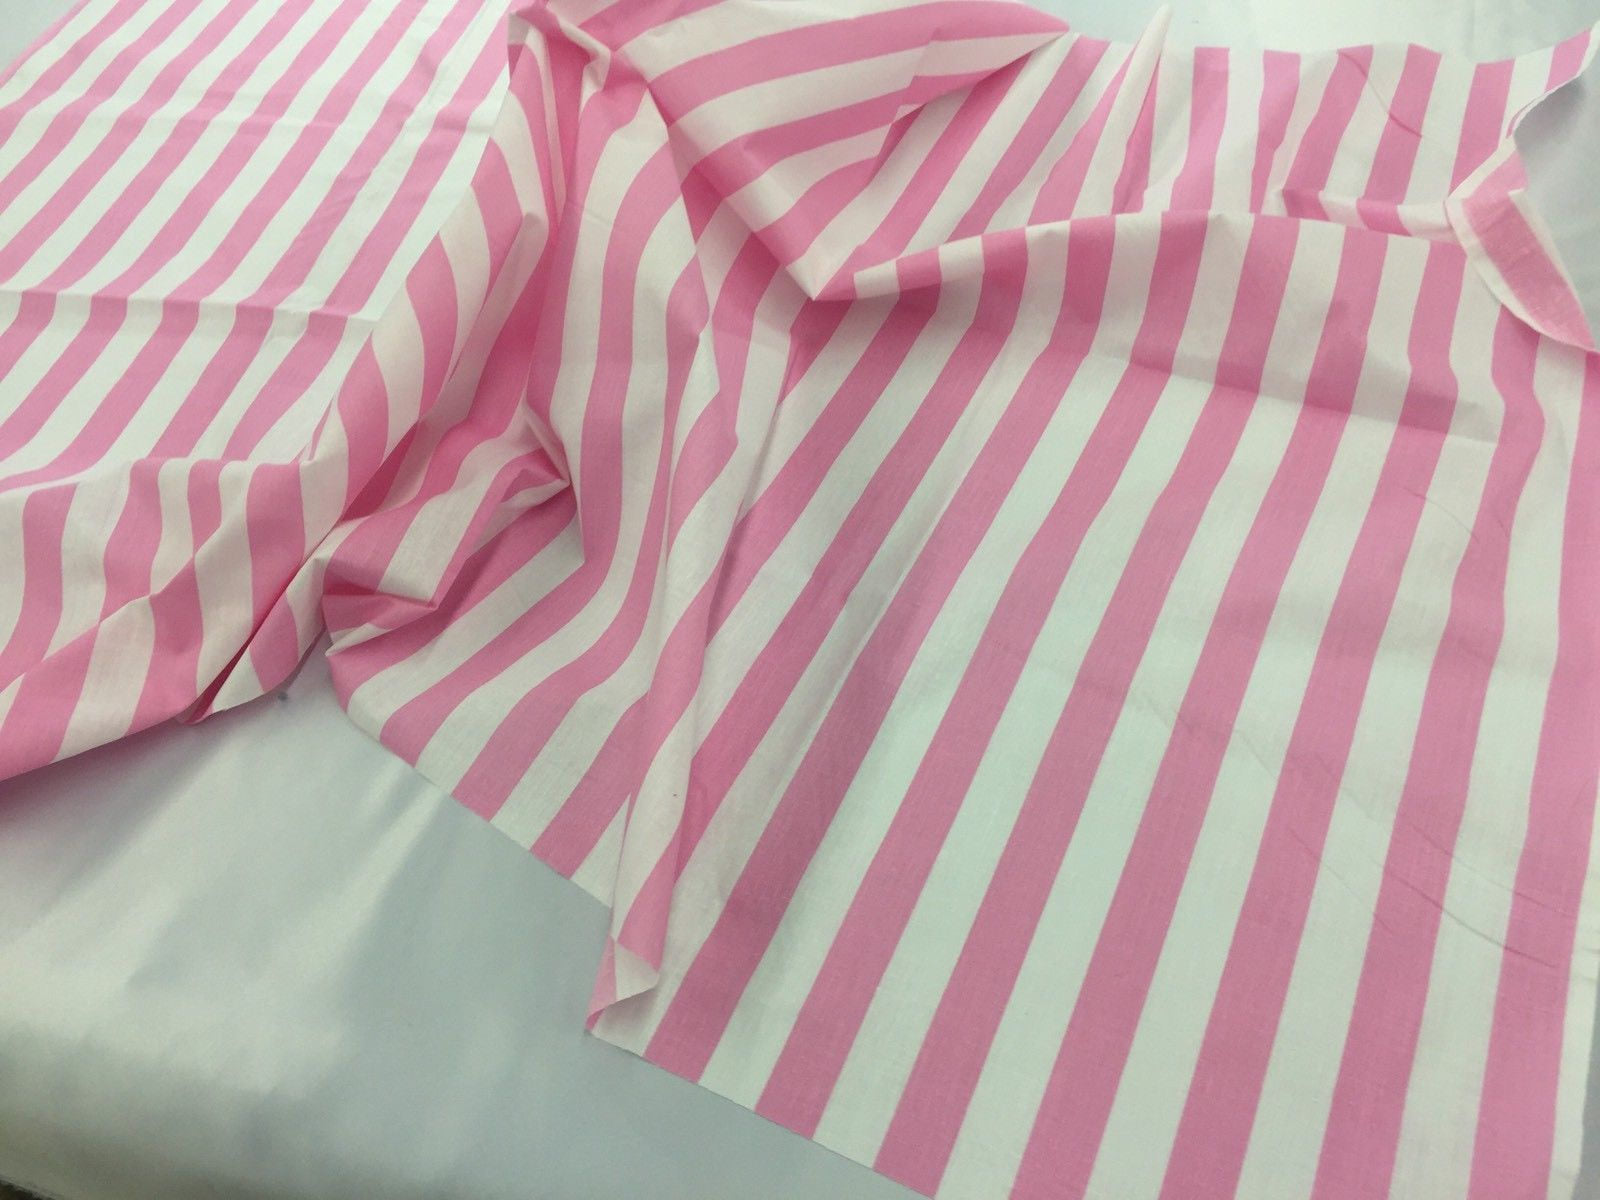 Poly Cotton Fabric Stripe Pink White By Yard - KINGDOM OF FABRICS